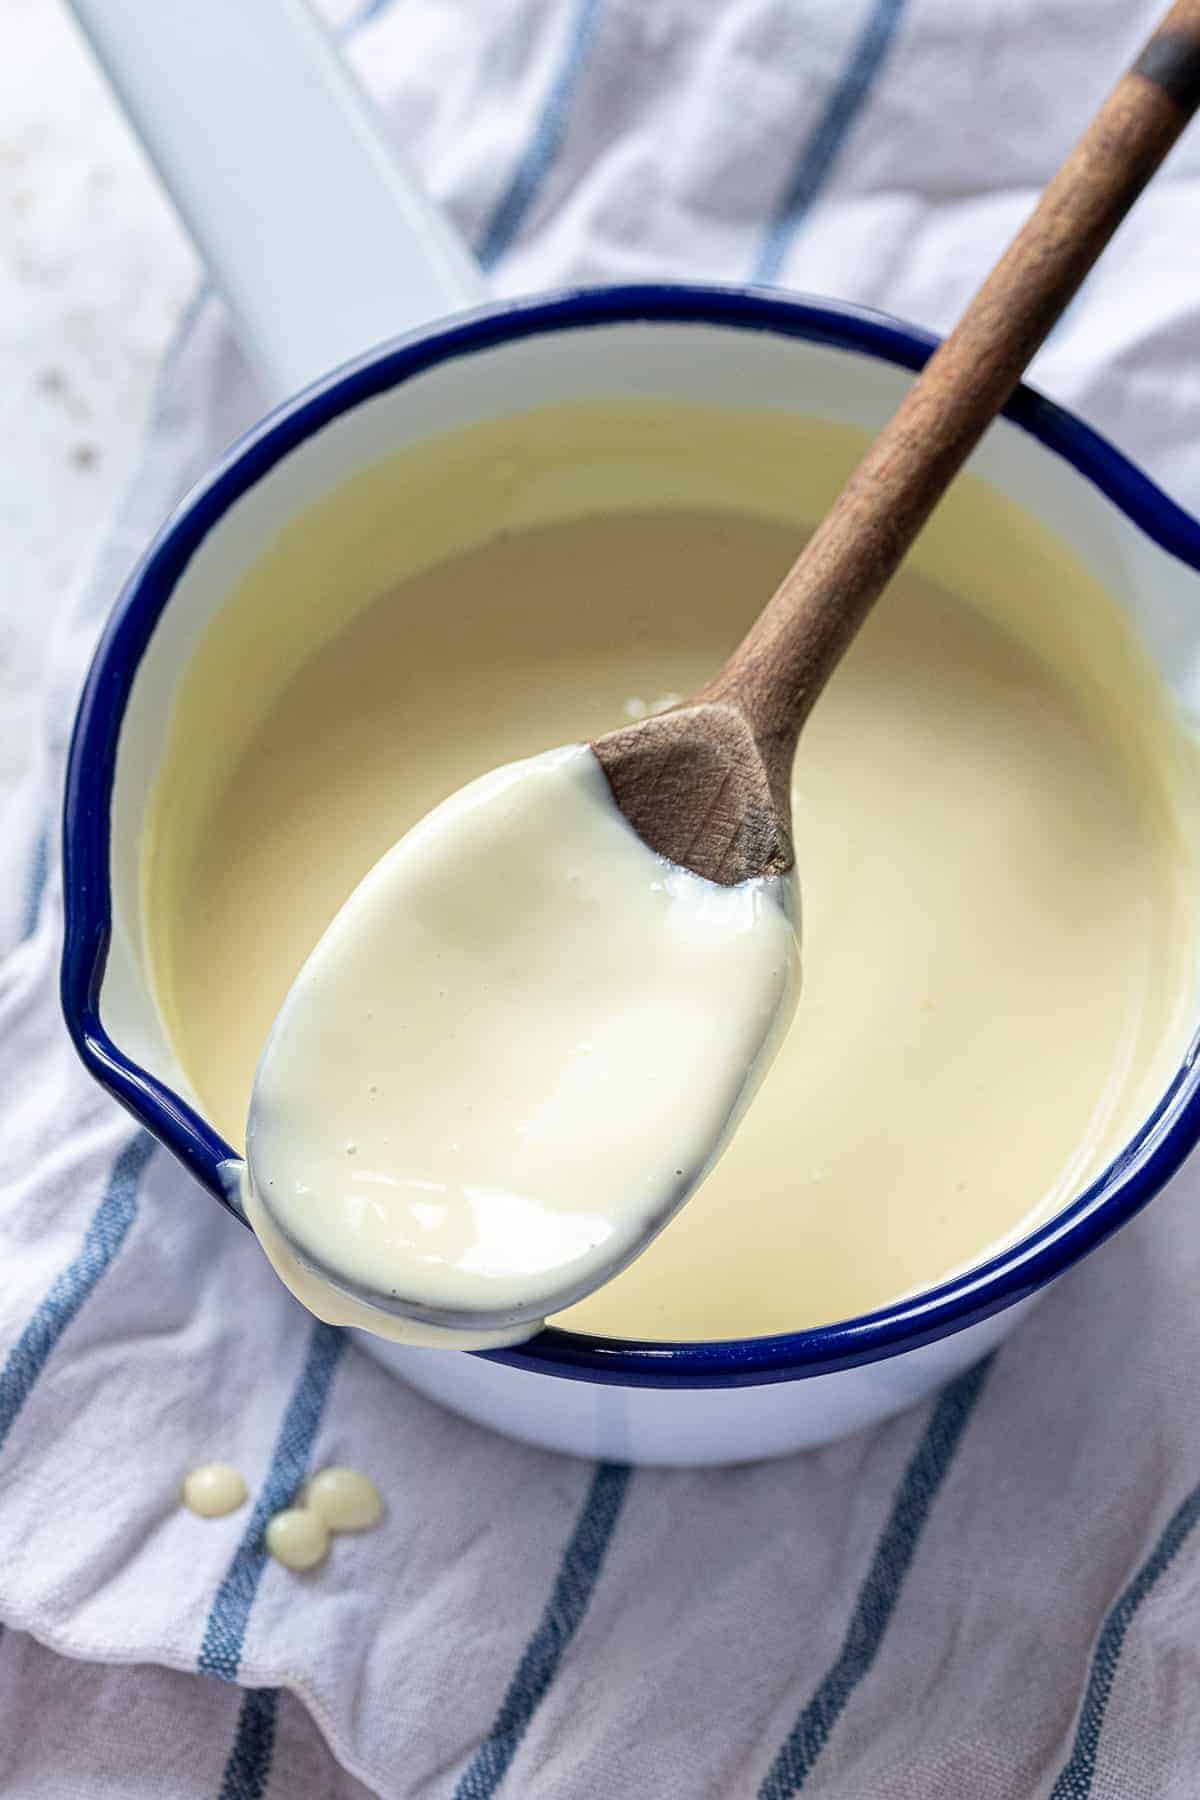 Close up of a wooden spoon covered in custard.